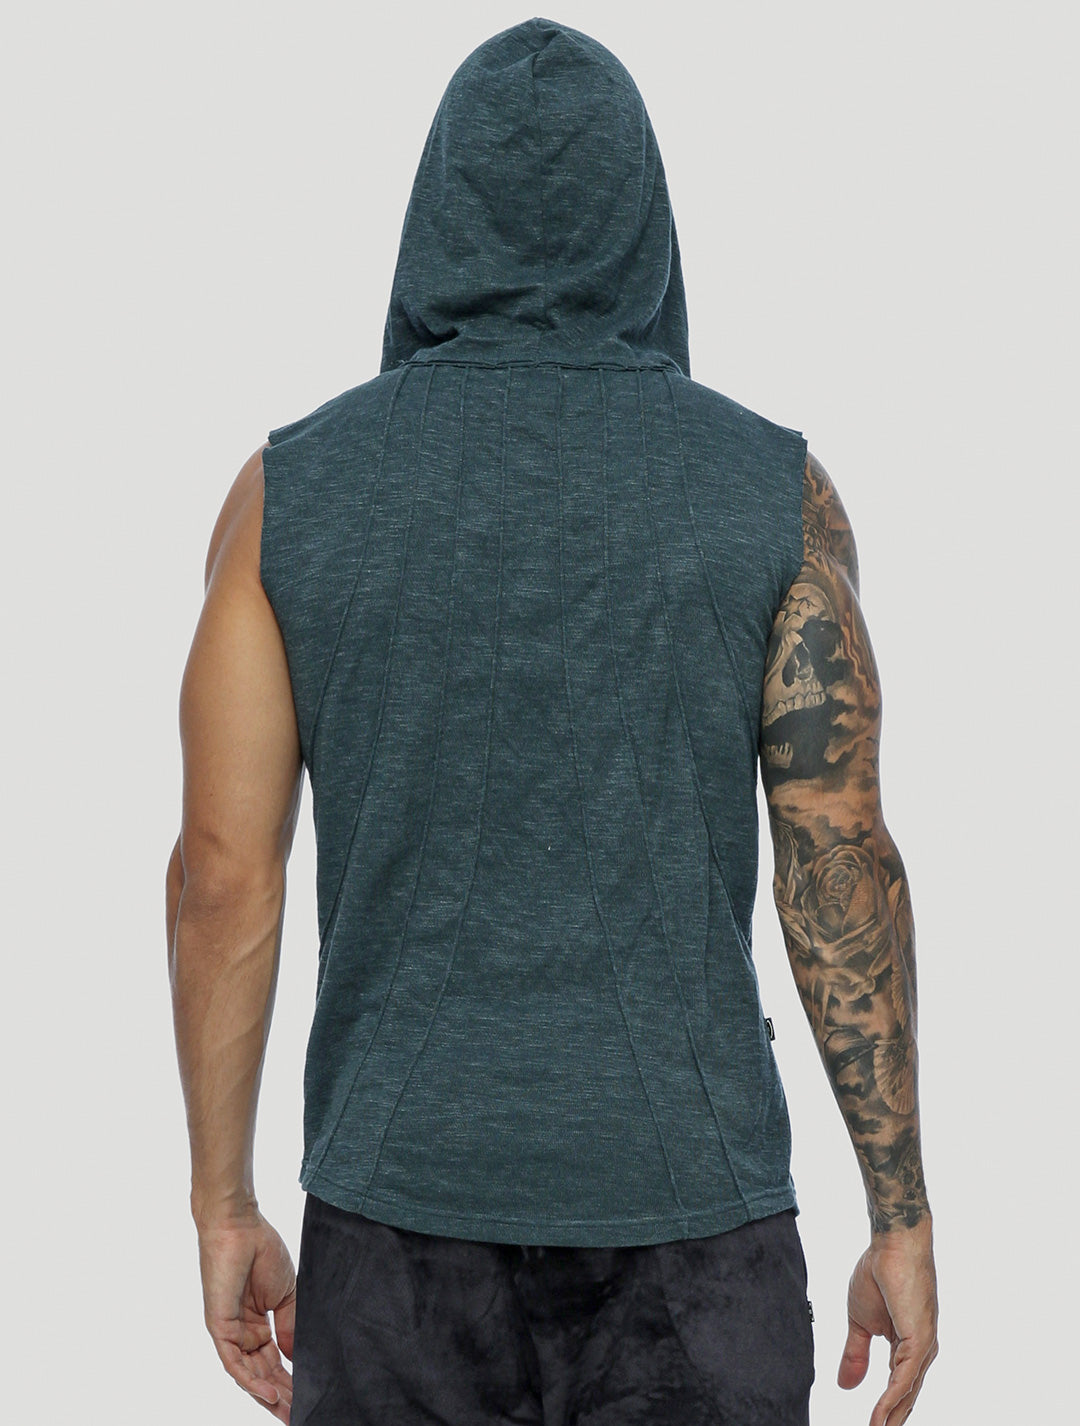 Shemesh Sleeveless Hooded Tee